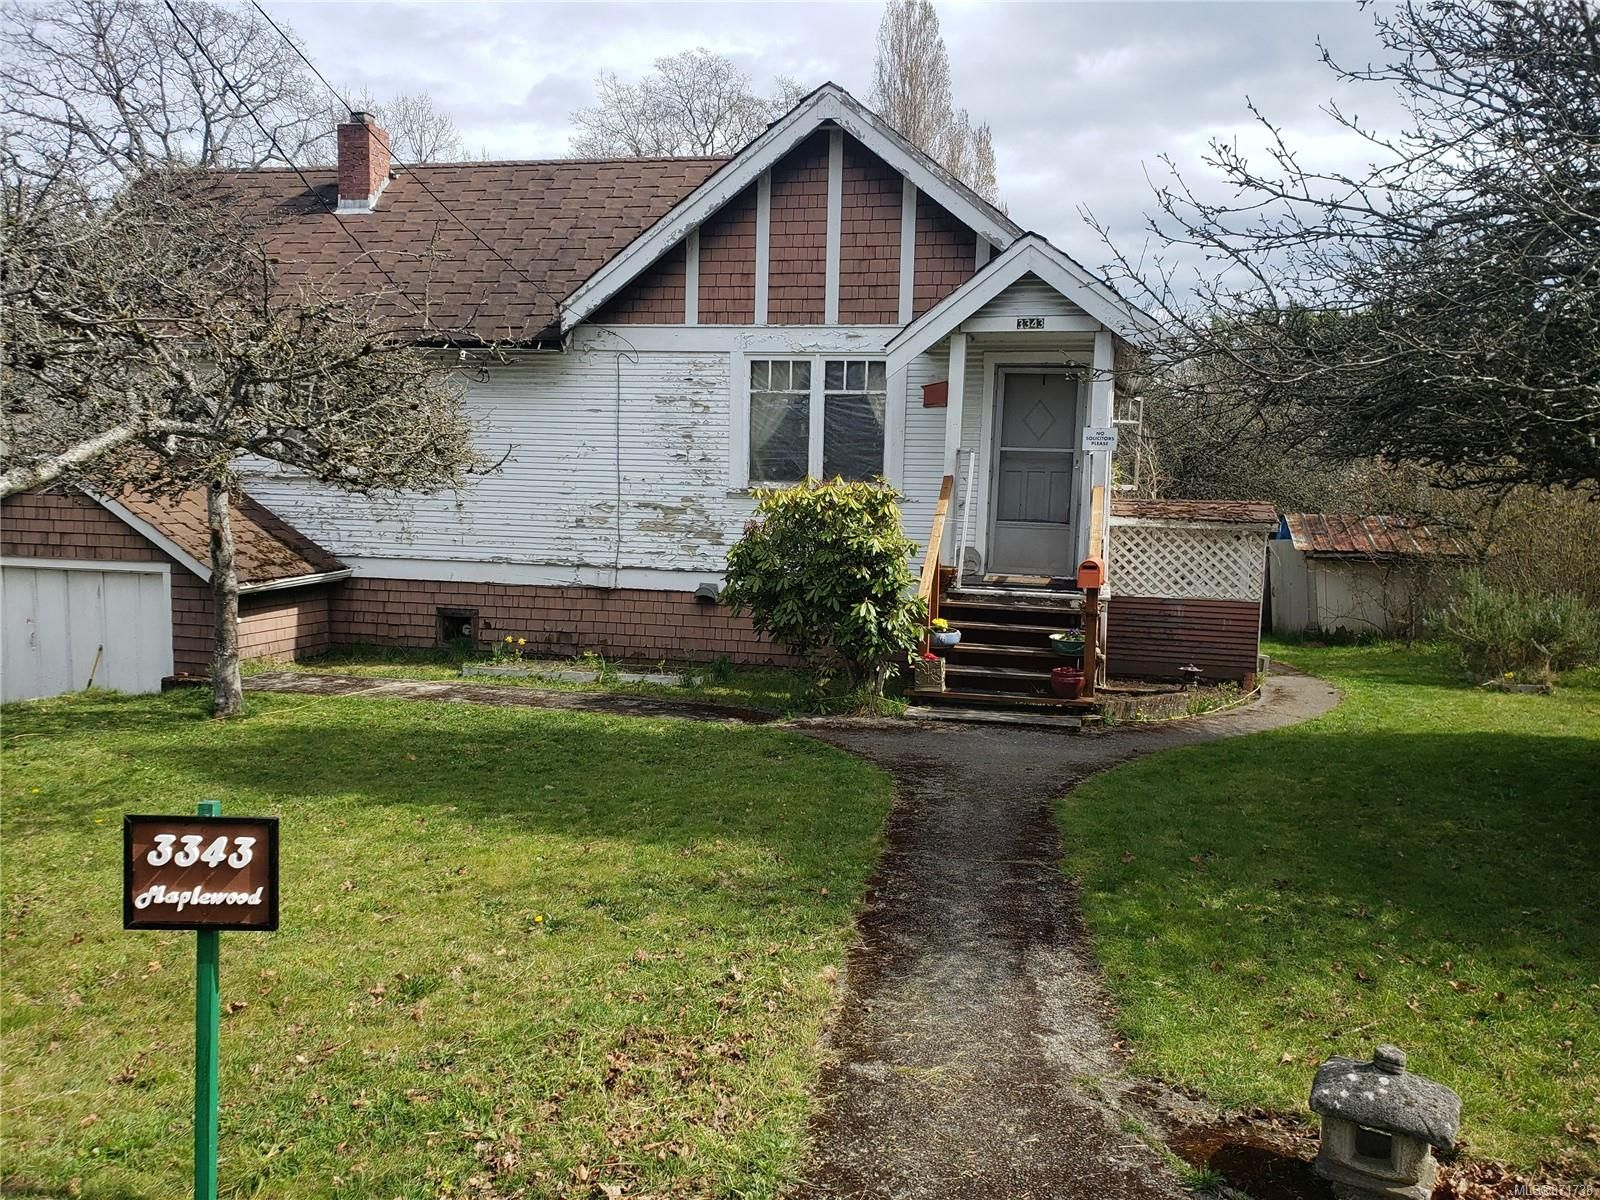 Main Photo: 3343 Maplewood Rd in : SE Cedar Hill House for sale (Saanich East)  : MLS®# 871738